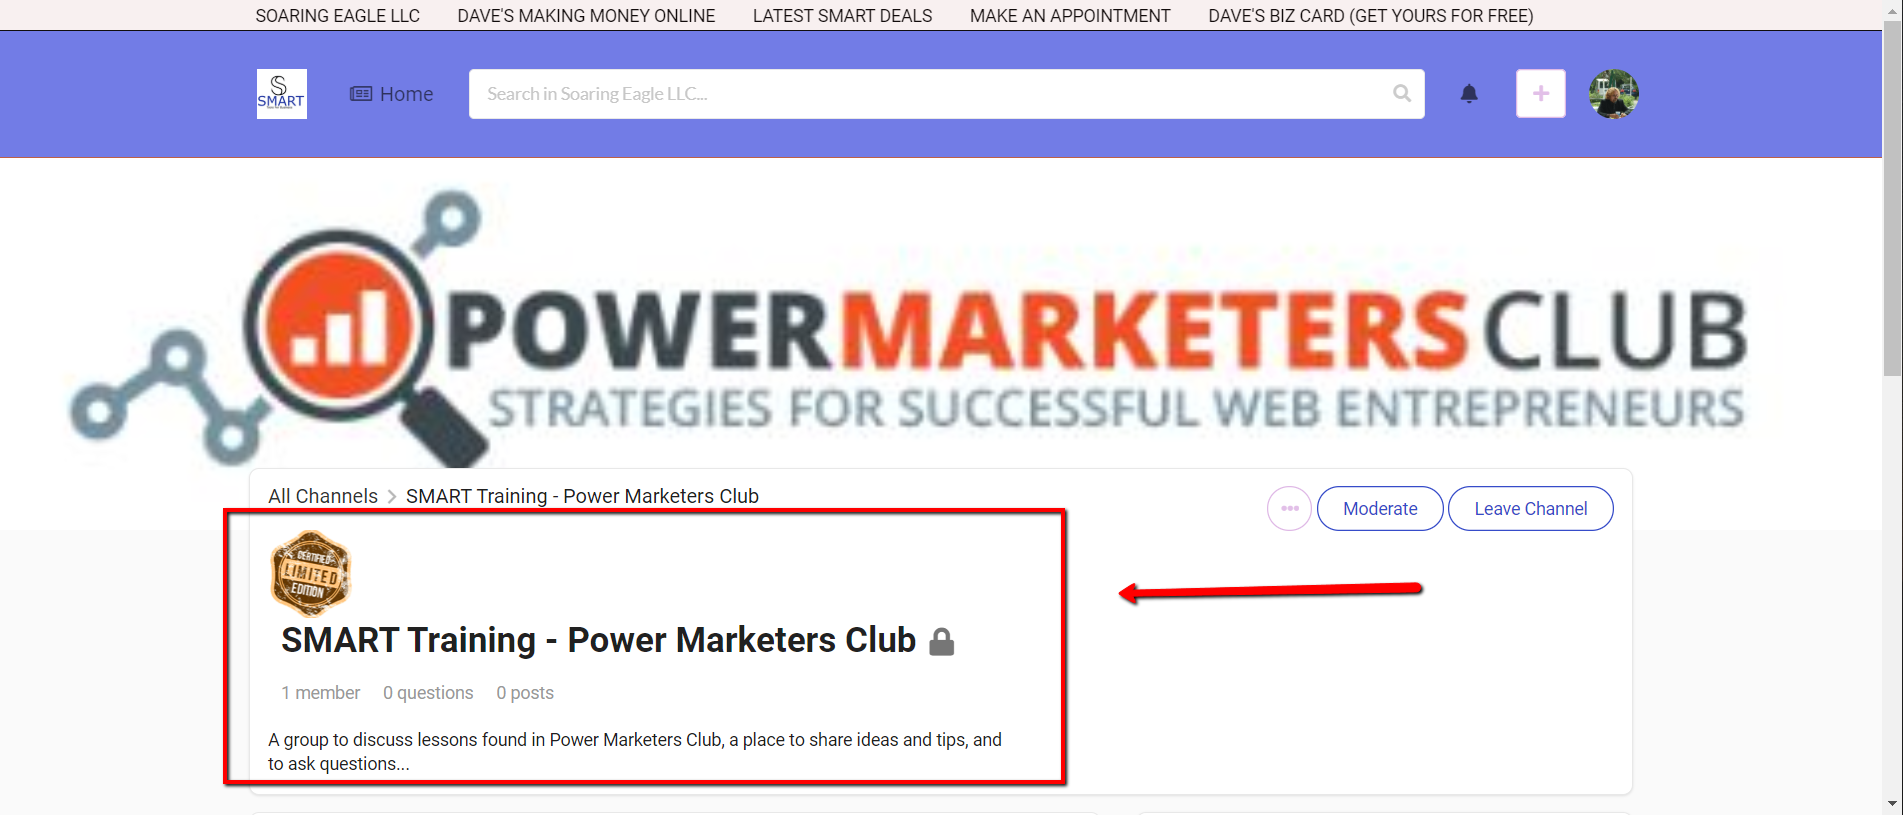 2019 12 28 1717 - SMART Training - Power Marketer's Club - Are You Making These 5 Business Mistakes?